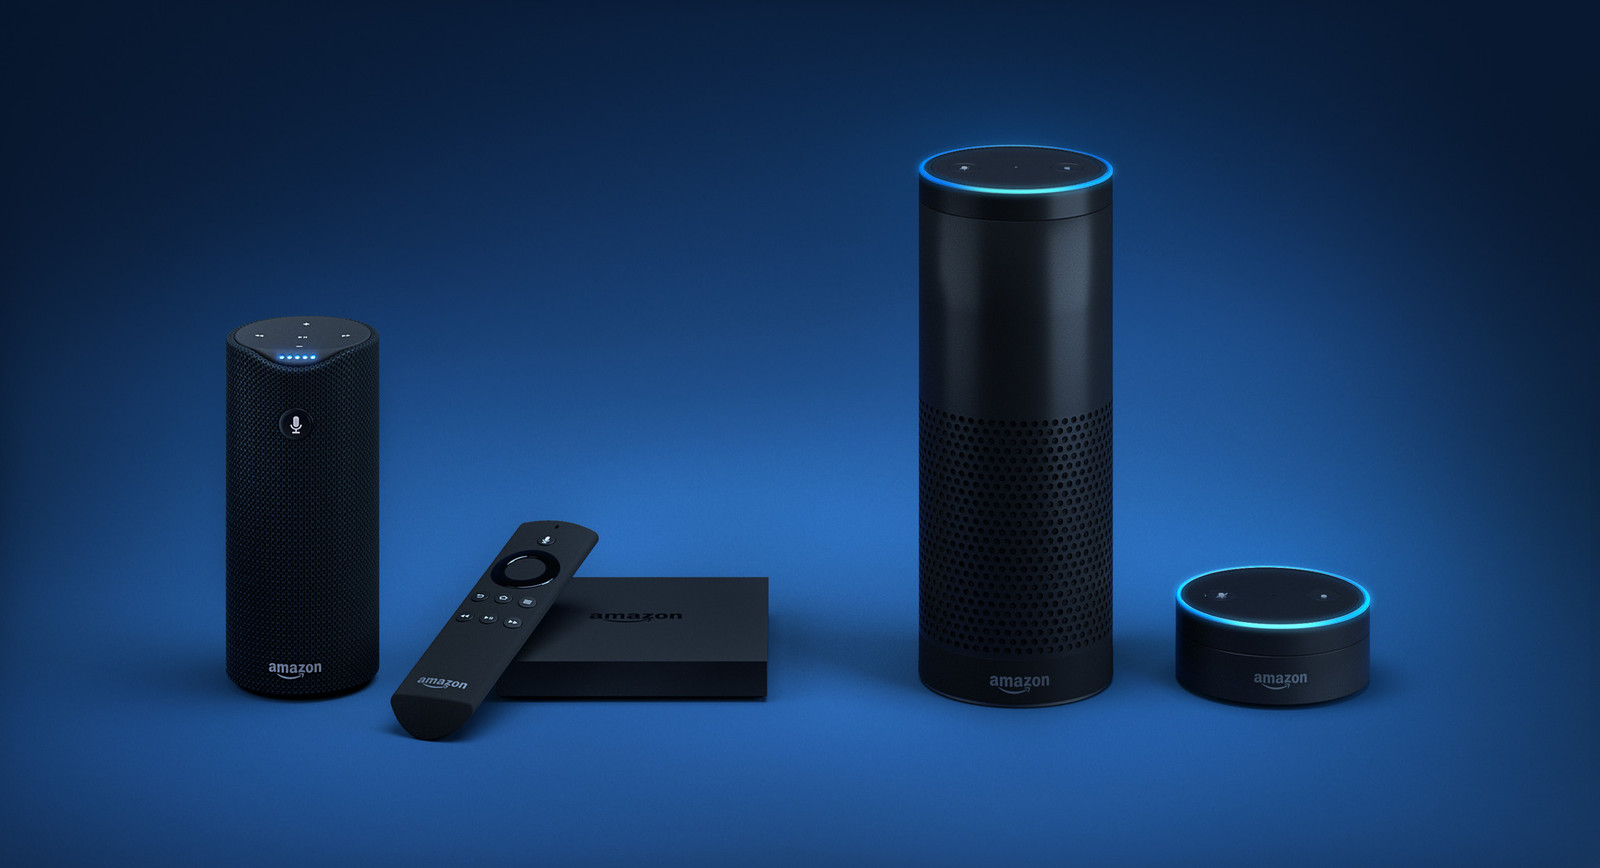 amazon-alexa-family-press-hero.jpg